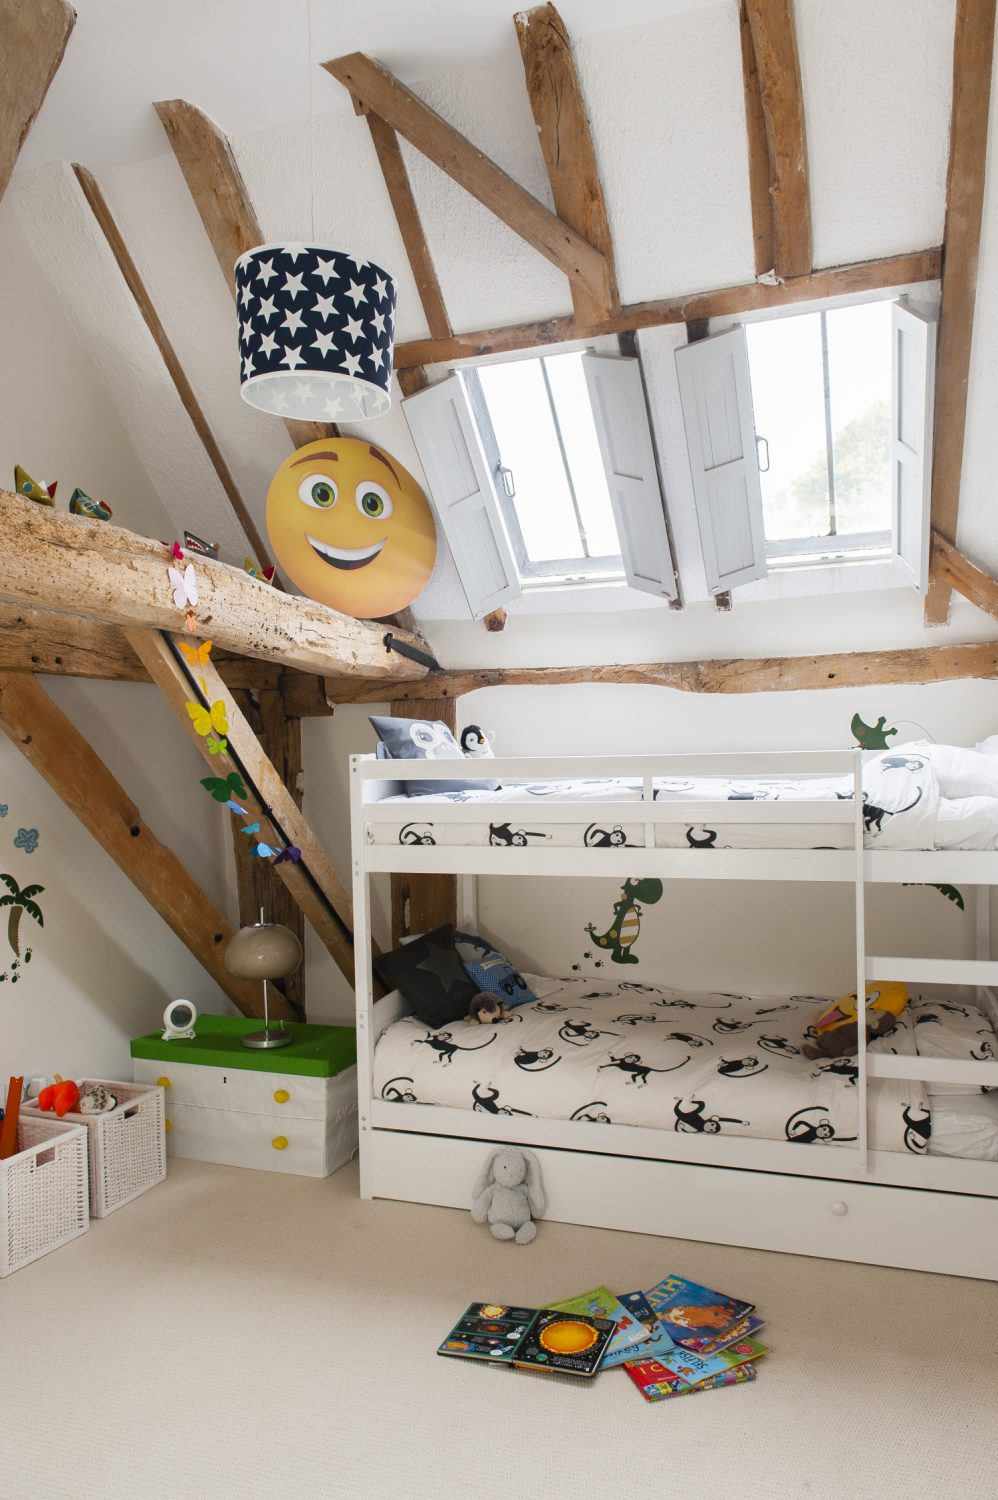 The 300-year-old oak structure of the barn criss-crosses Jay's room at the top of the house